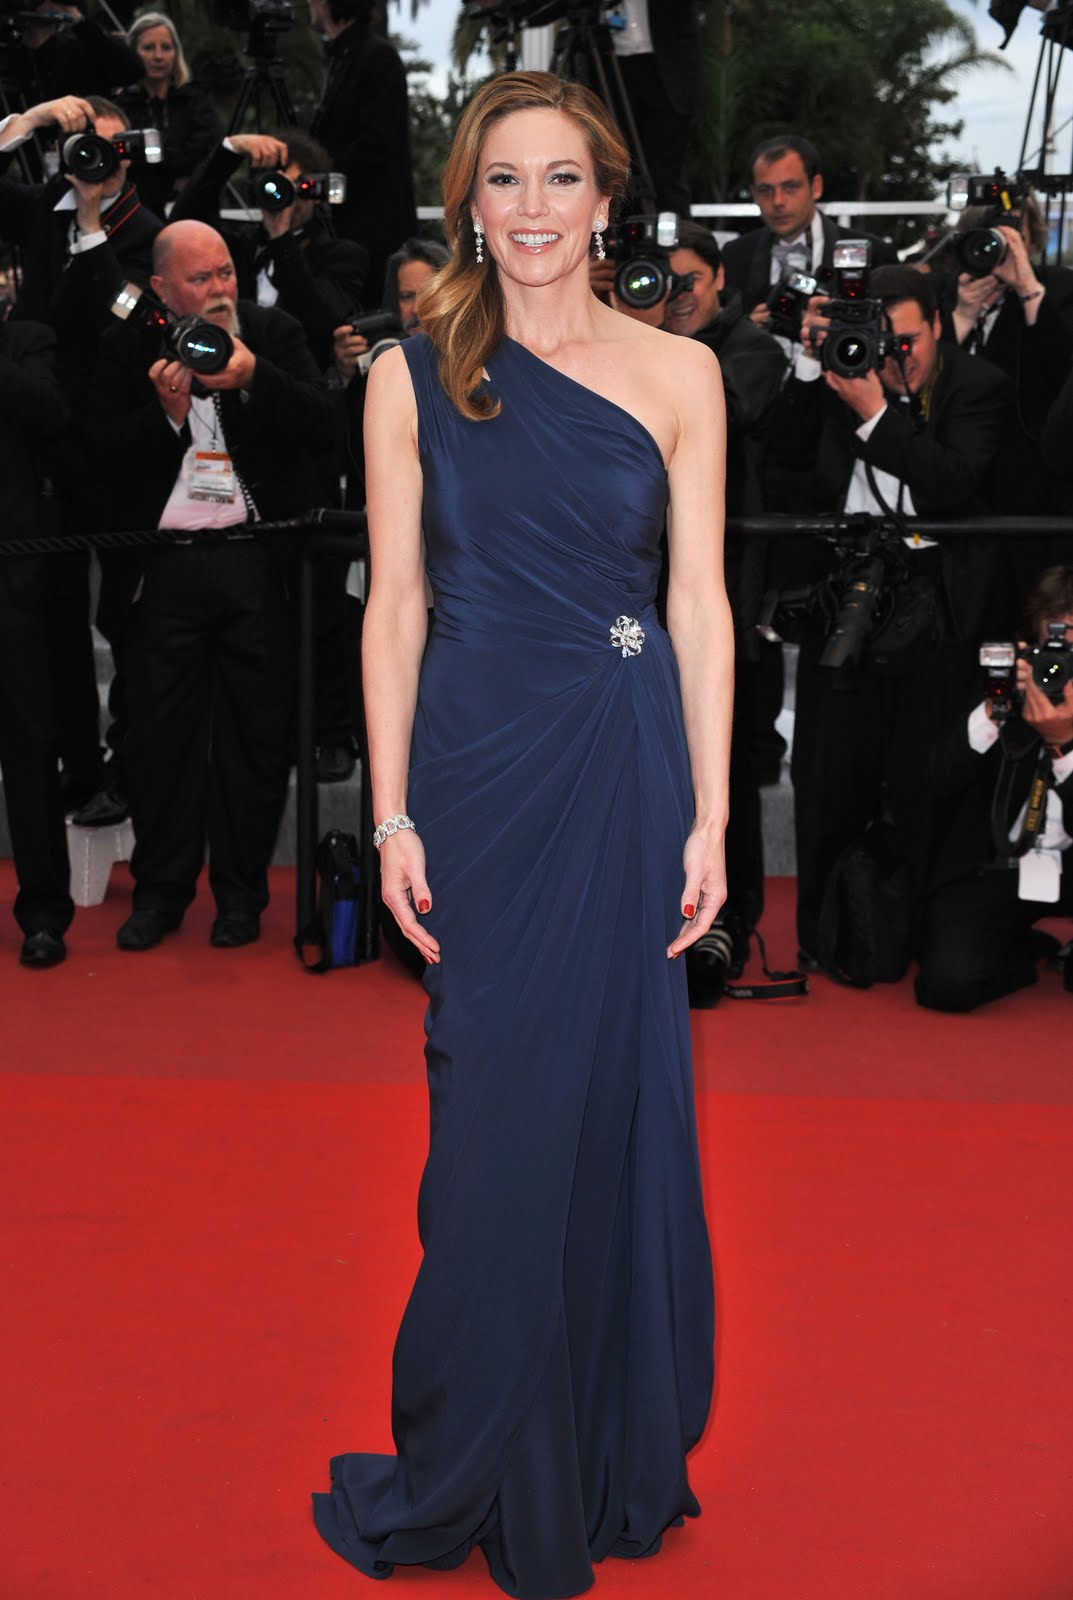 Dark Navy Dress What Color Shoes